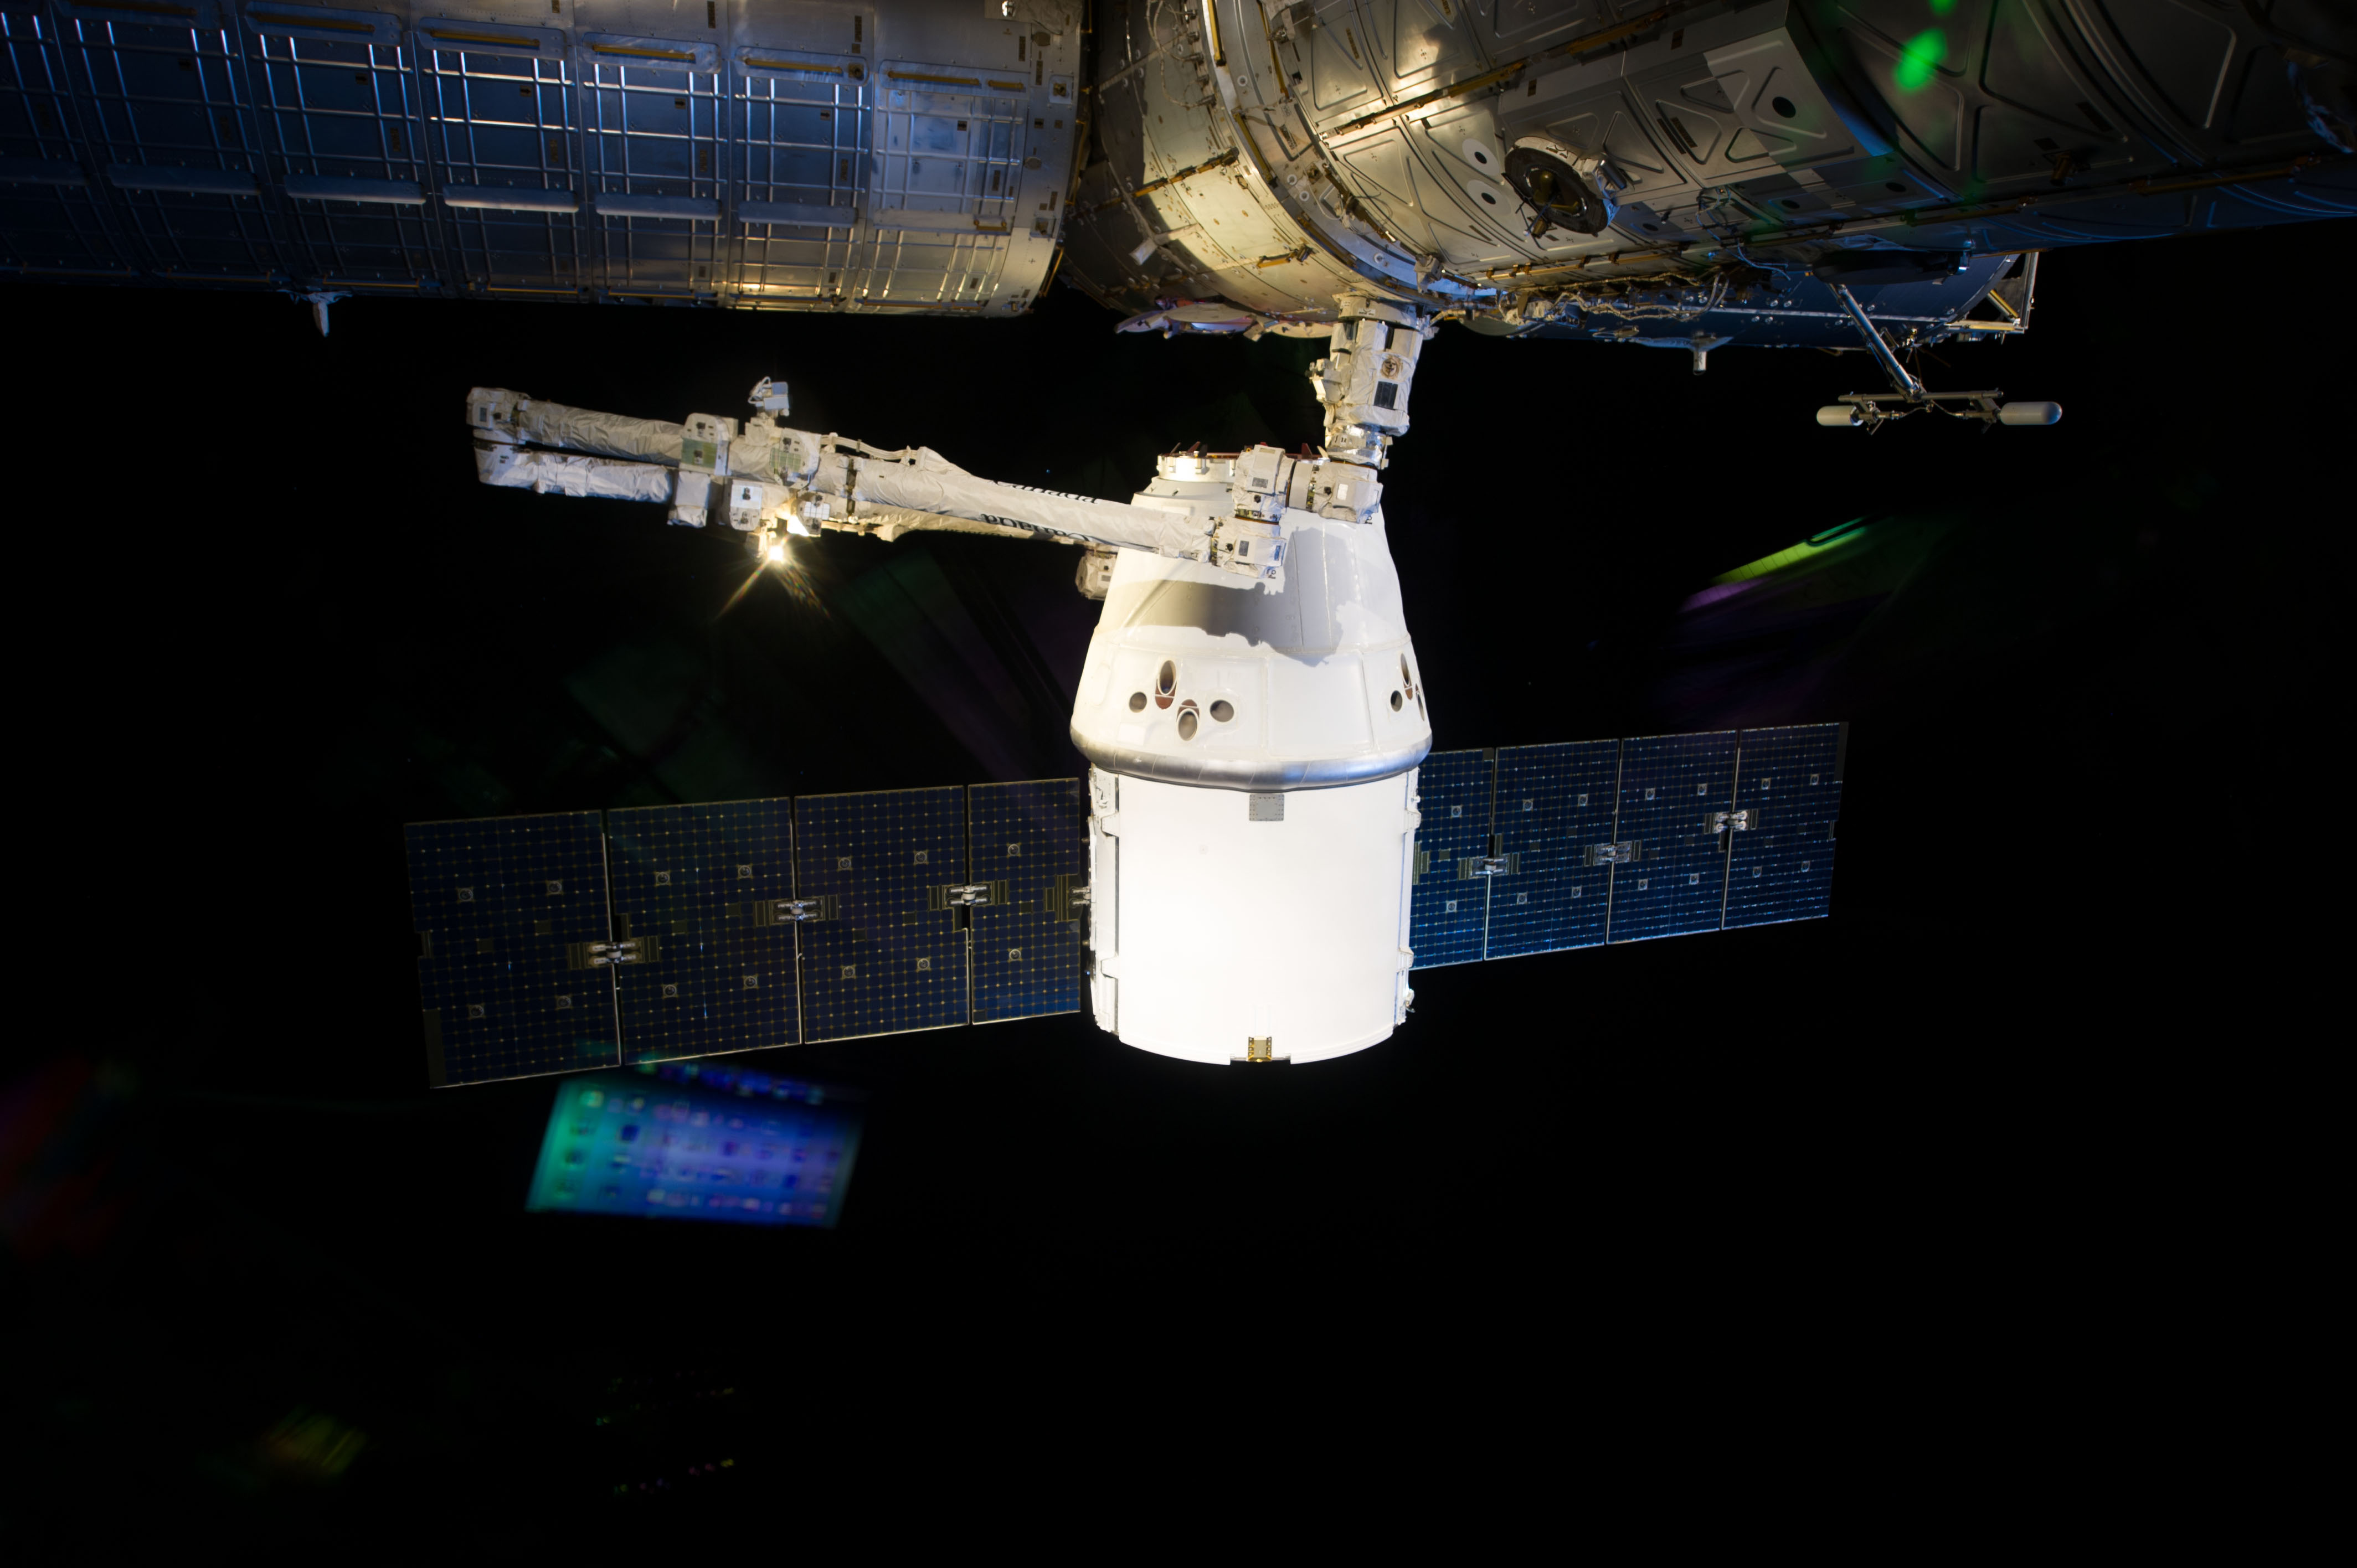 Approach, Capture and Docking of the SpaceX Dragon